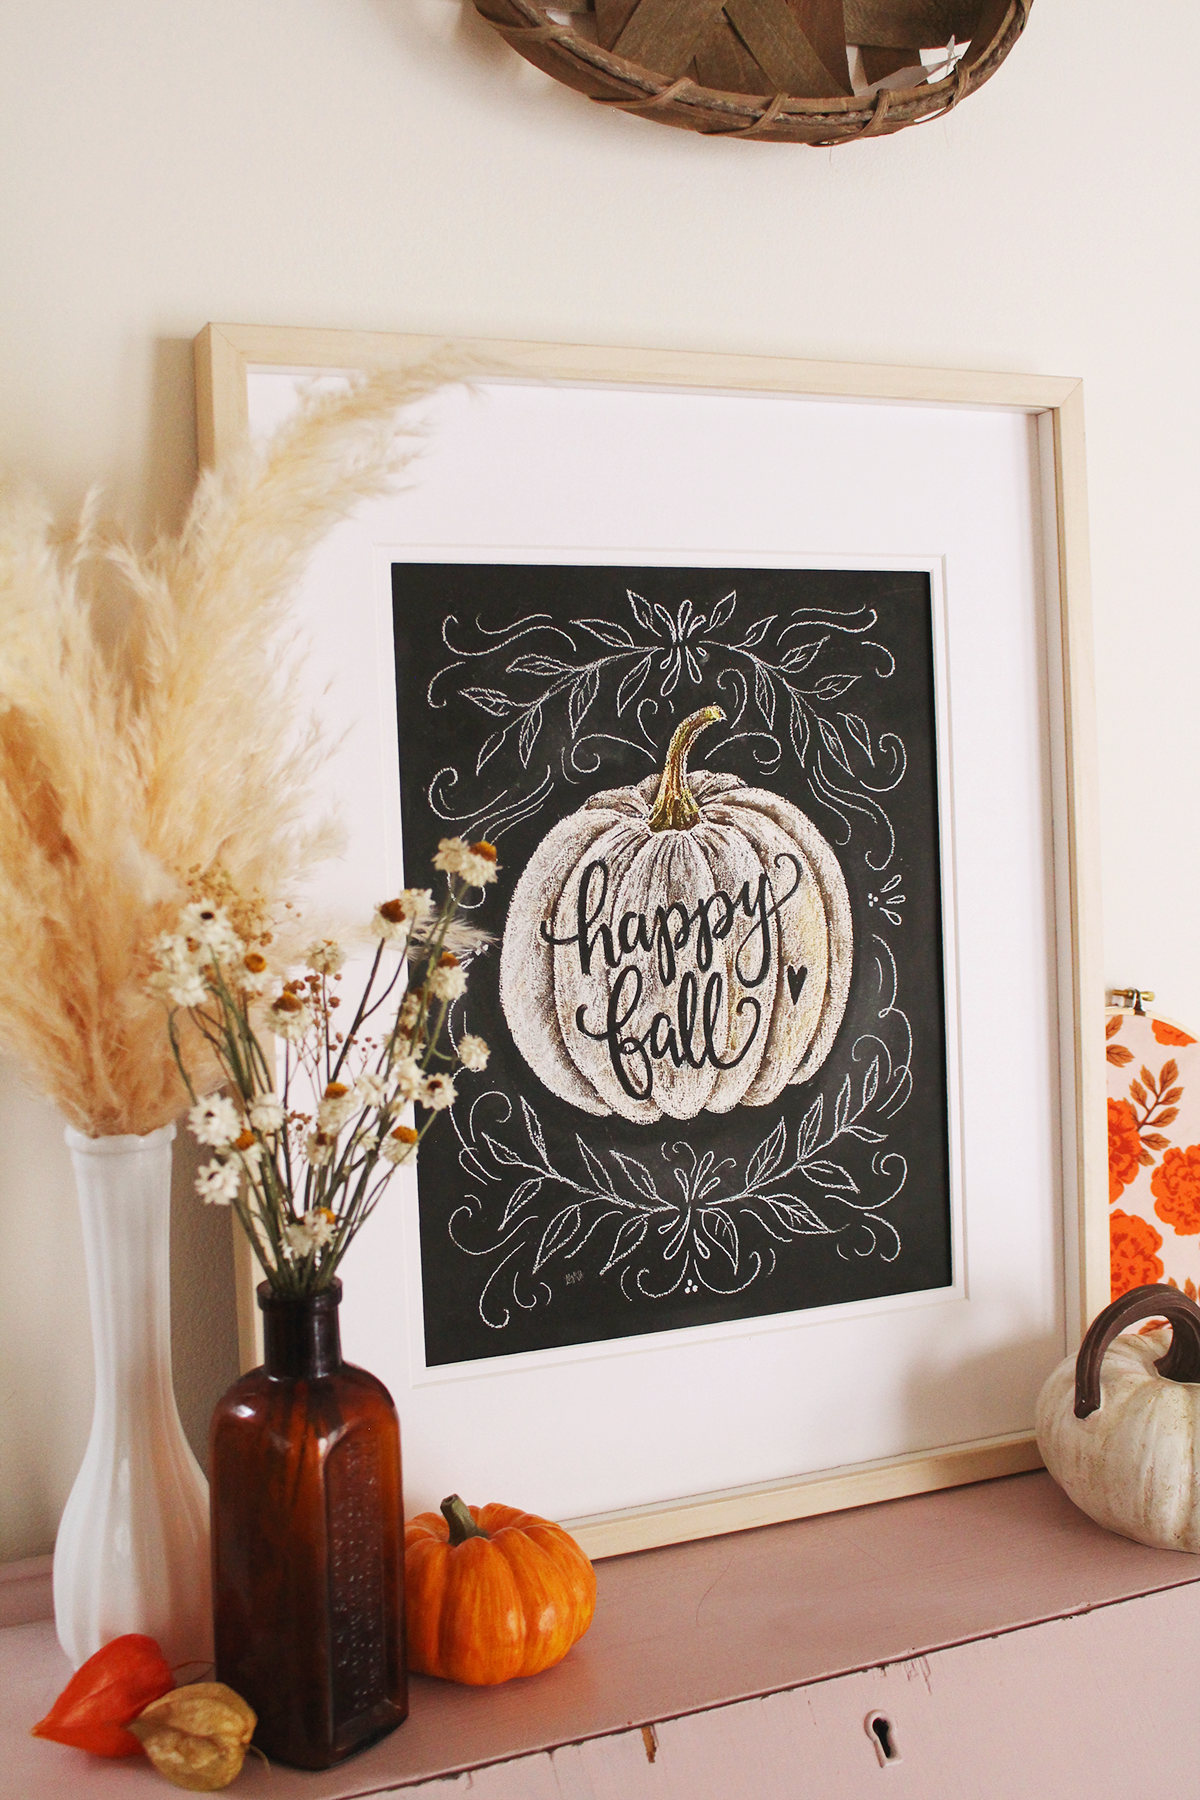 Happy Fall Hand Lettered Chalk Art Print